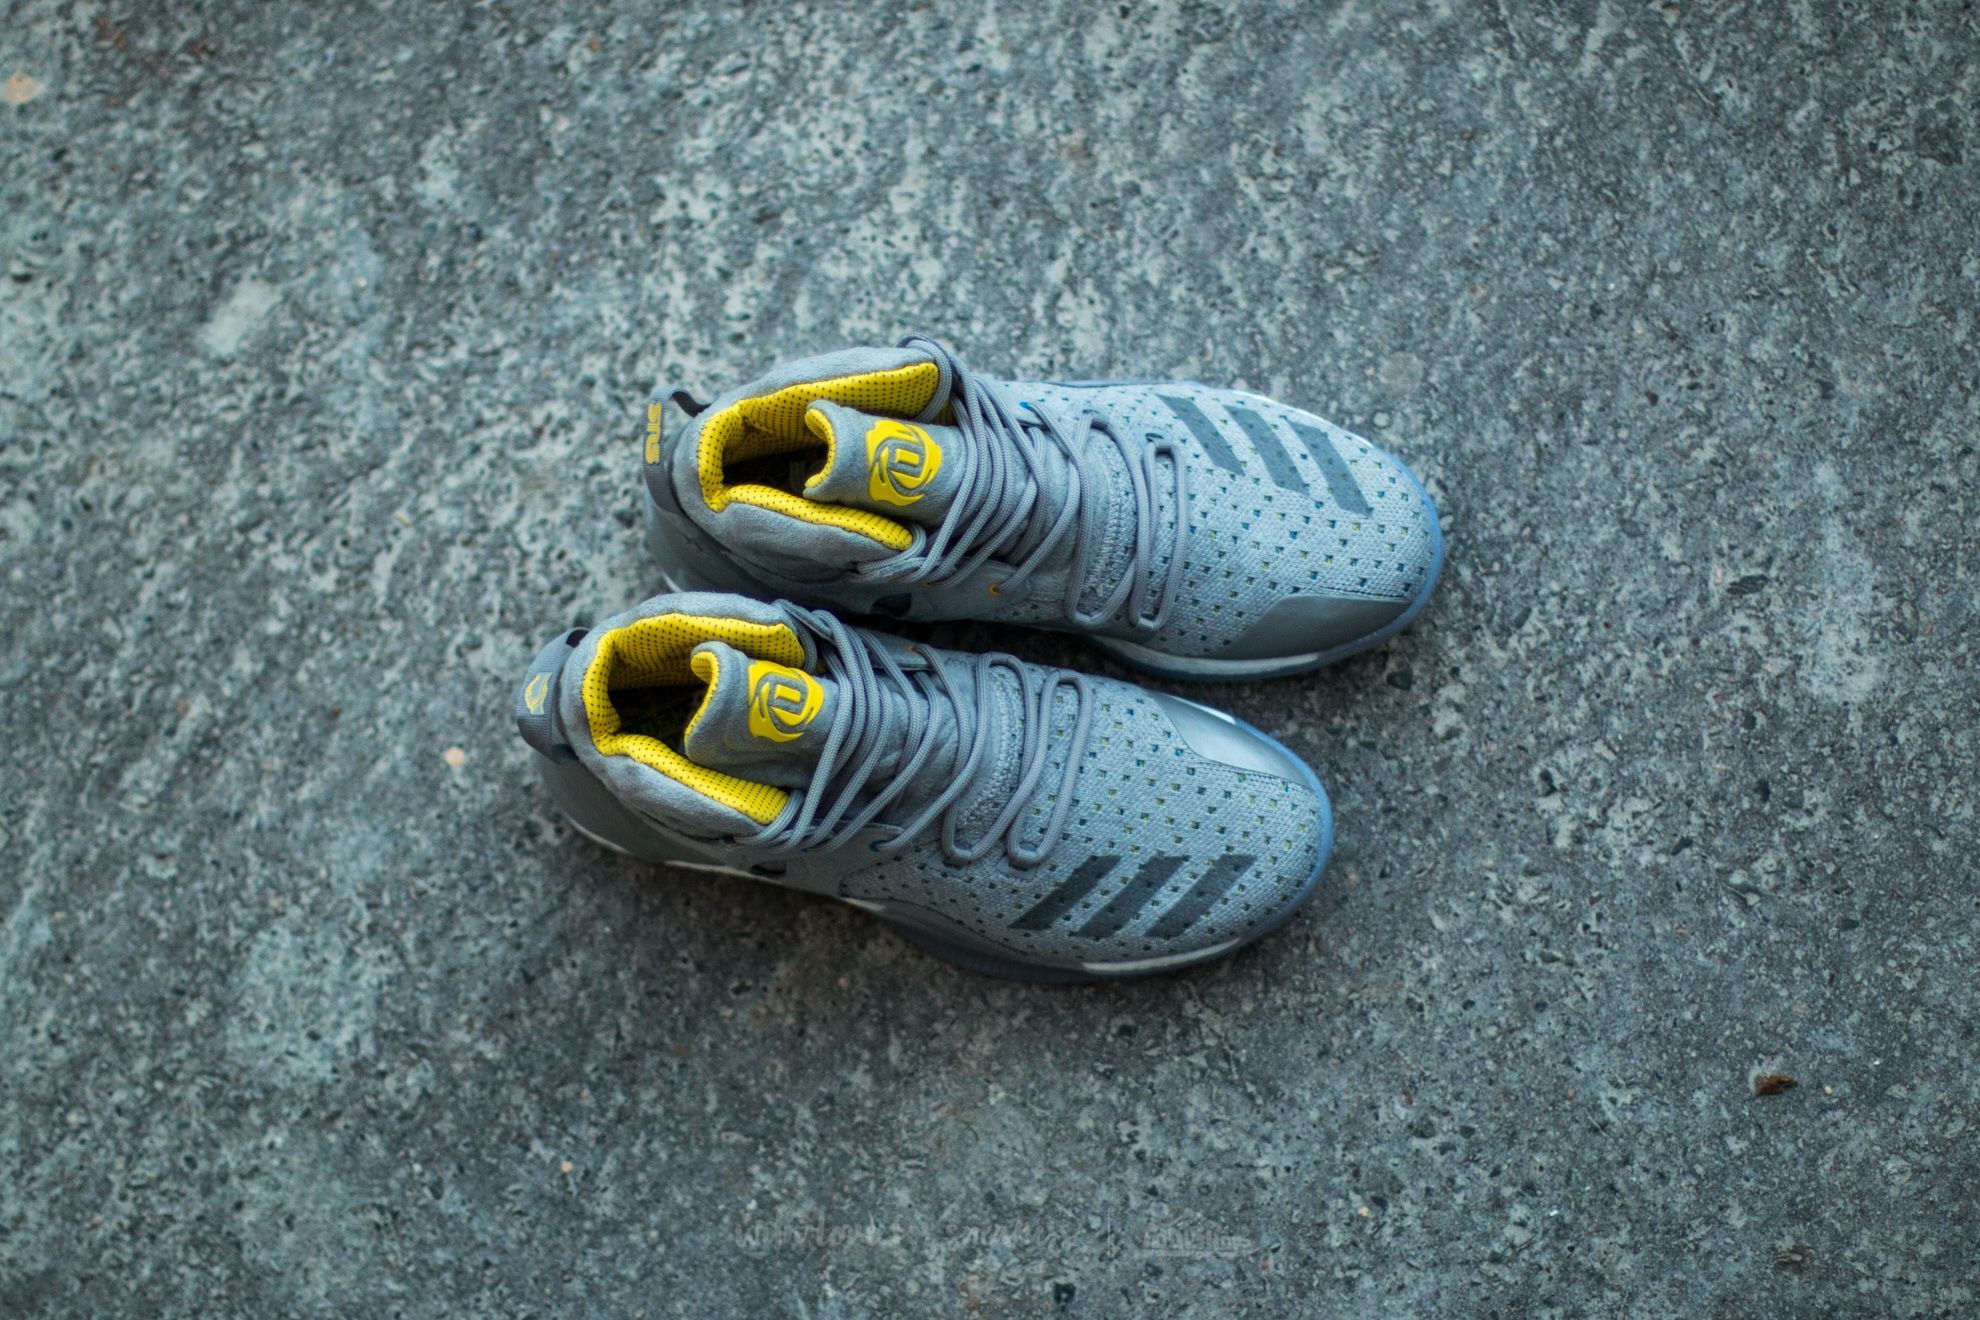 ef650fb2efb5 ... shoes mens yellow 96e72 1fce7  norway adidas consortium x  sneakersnstuff d rose 7 primeknit grey core yellow at a great price